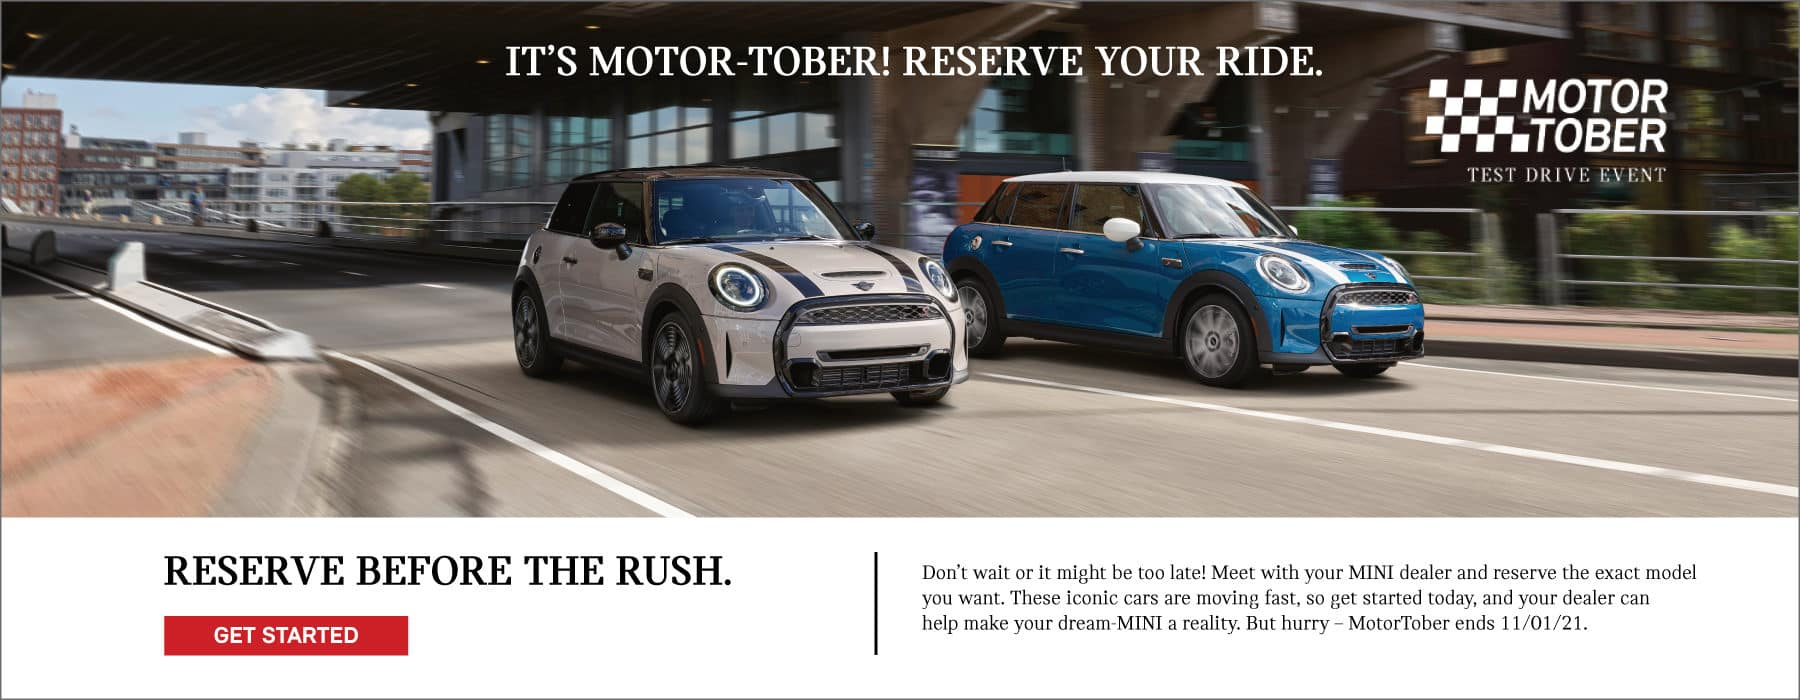 Motor-Tober is here! Reserve your MINI noe before the rush!